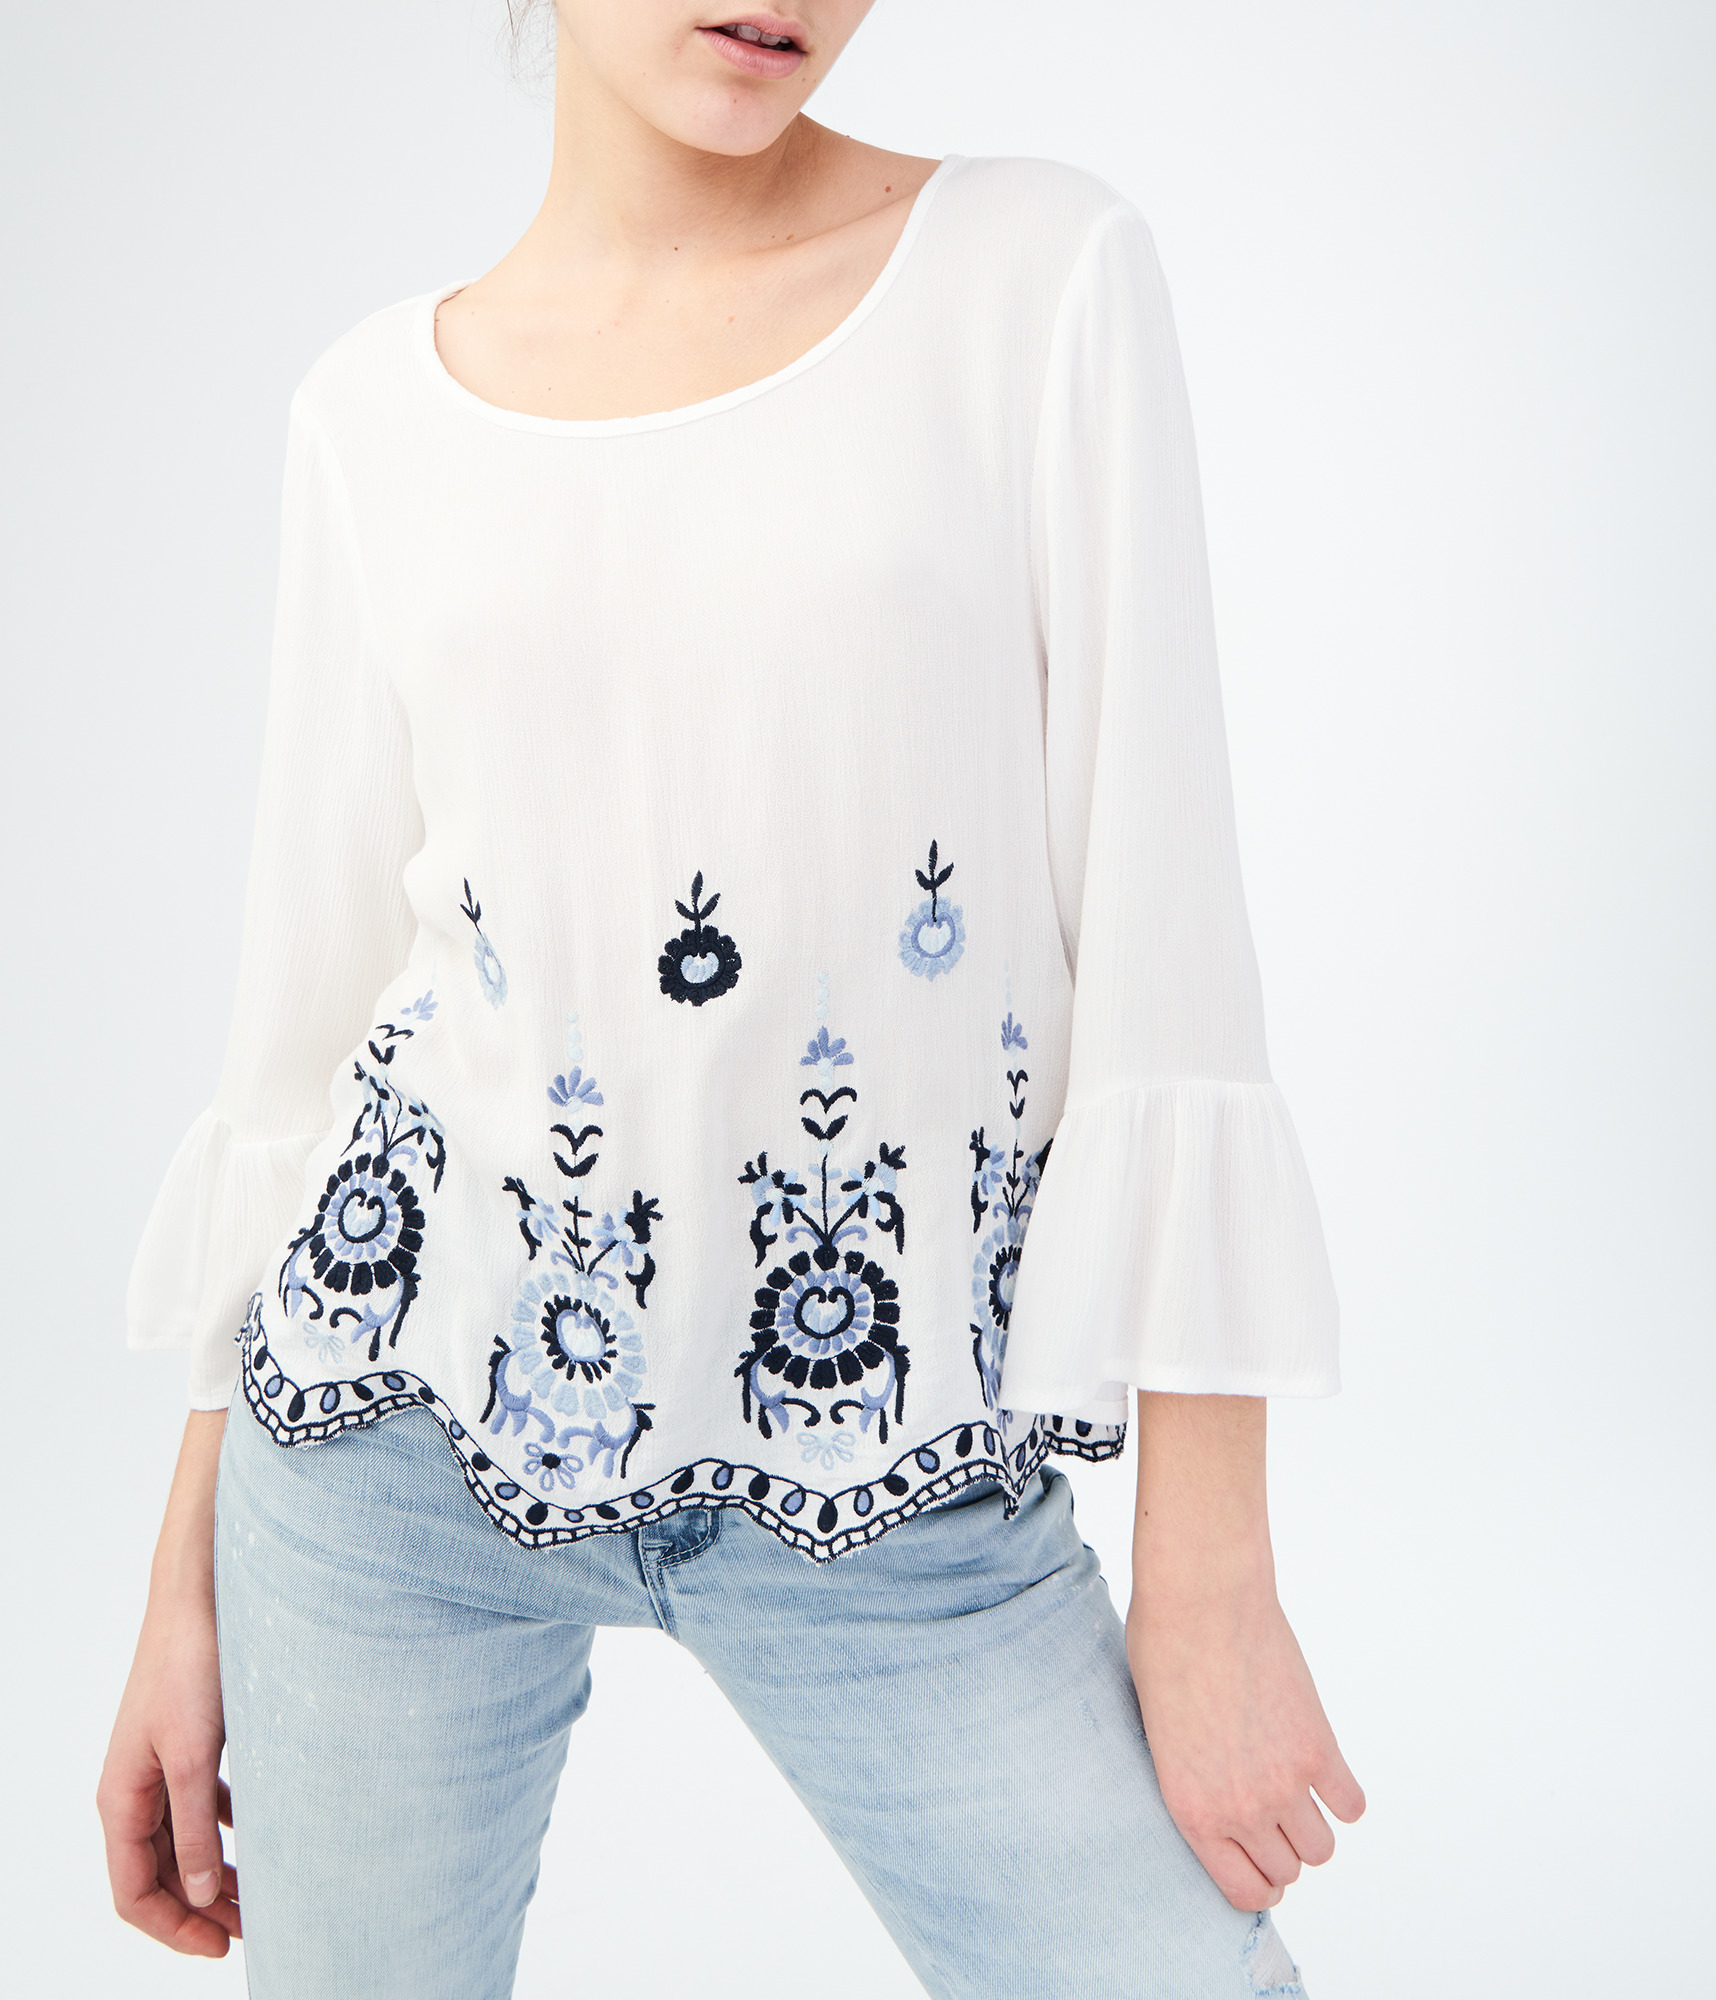 Aeropostale Long Sleeve Embroidered Top - Floral White, Large